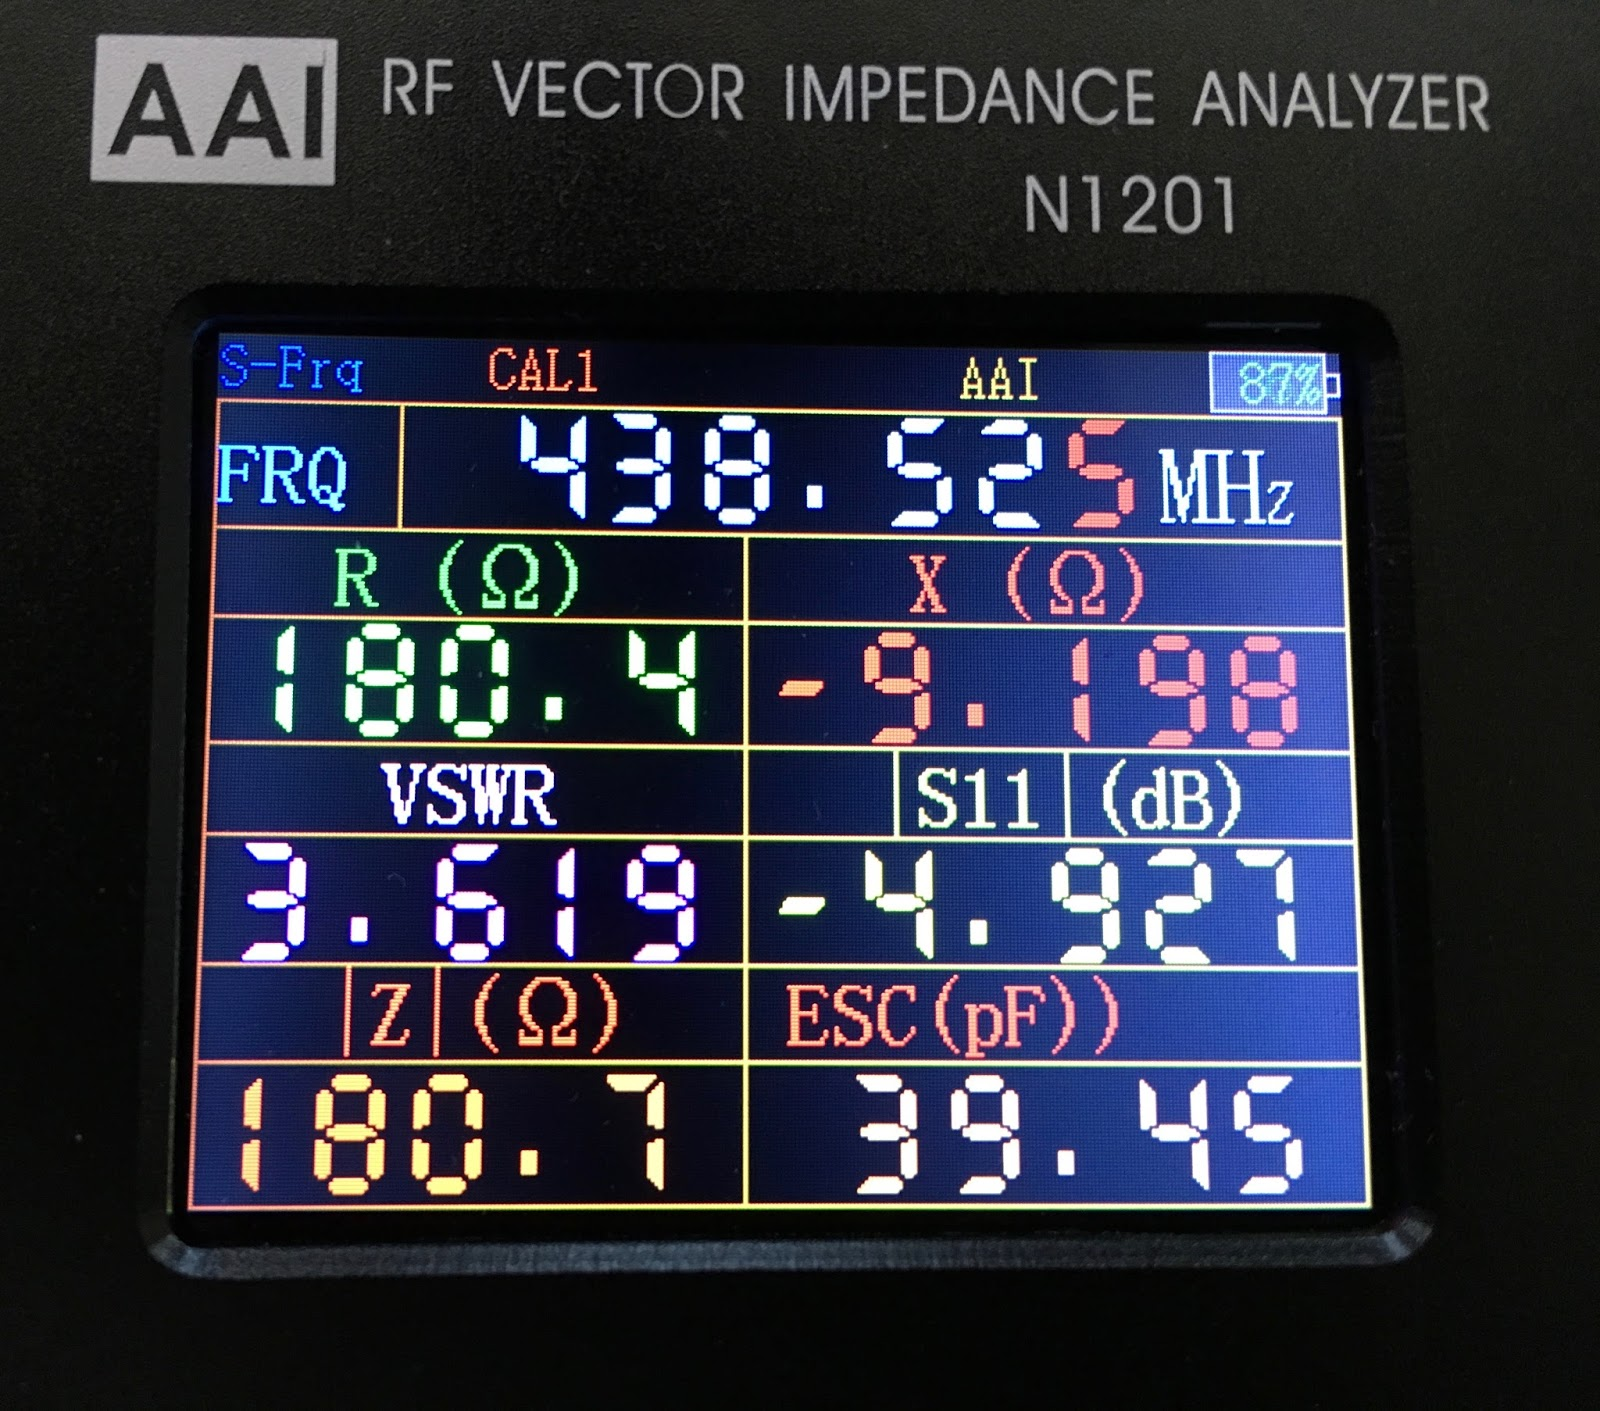 marxy's musing on technology: Low cost 2 7GHz antenna analyser